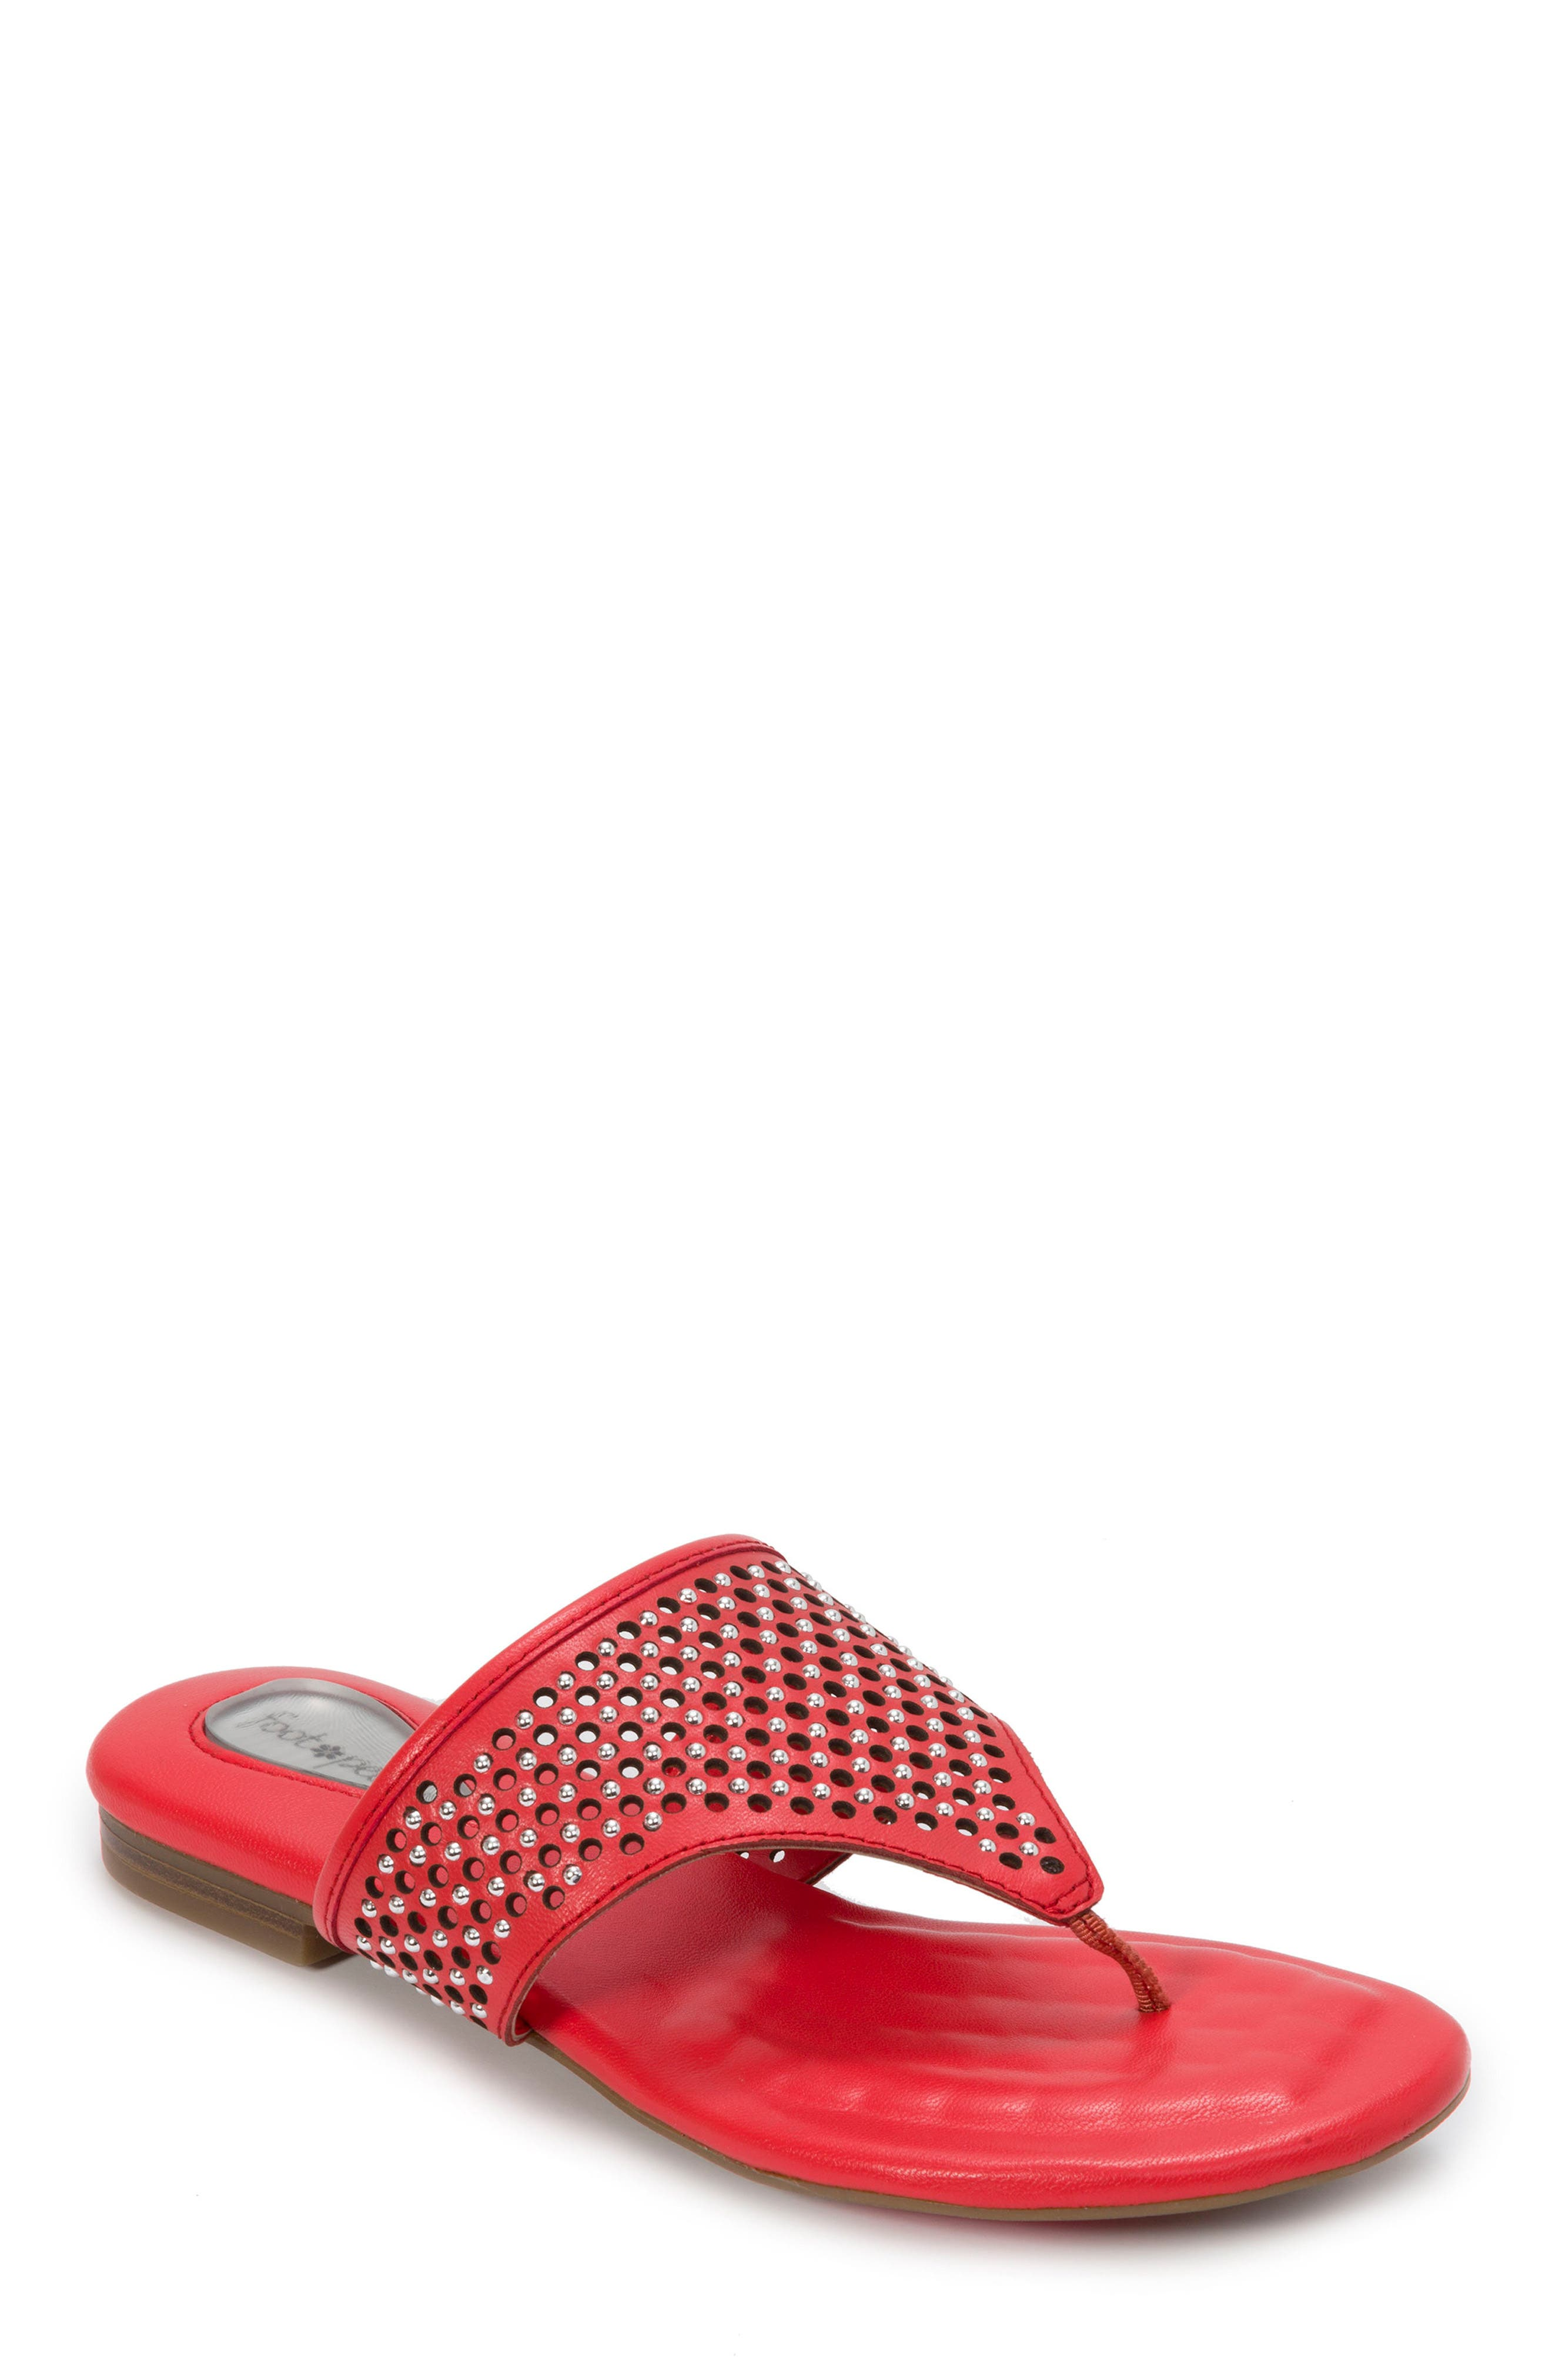 Foot Petals Evie Sandal, Red